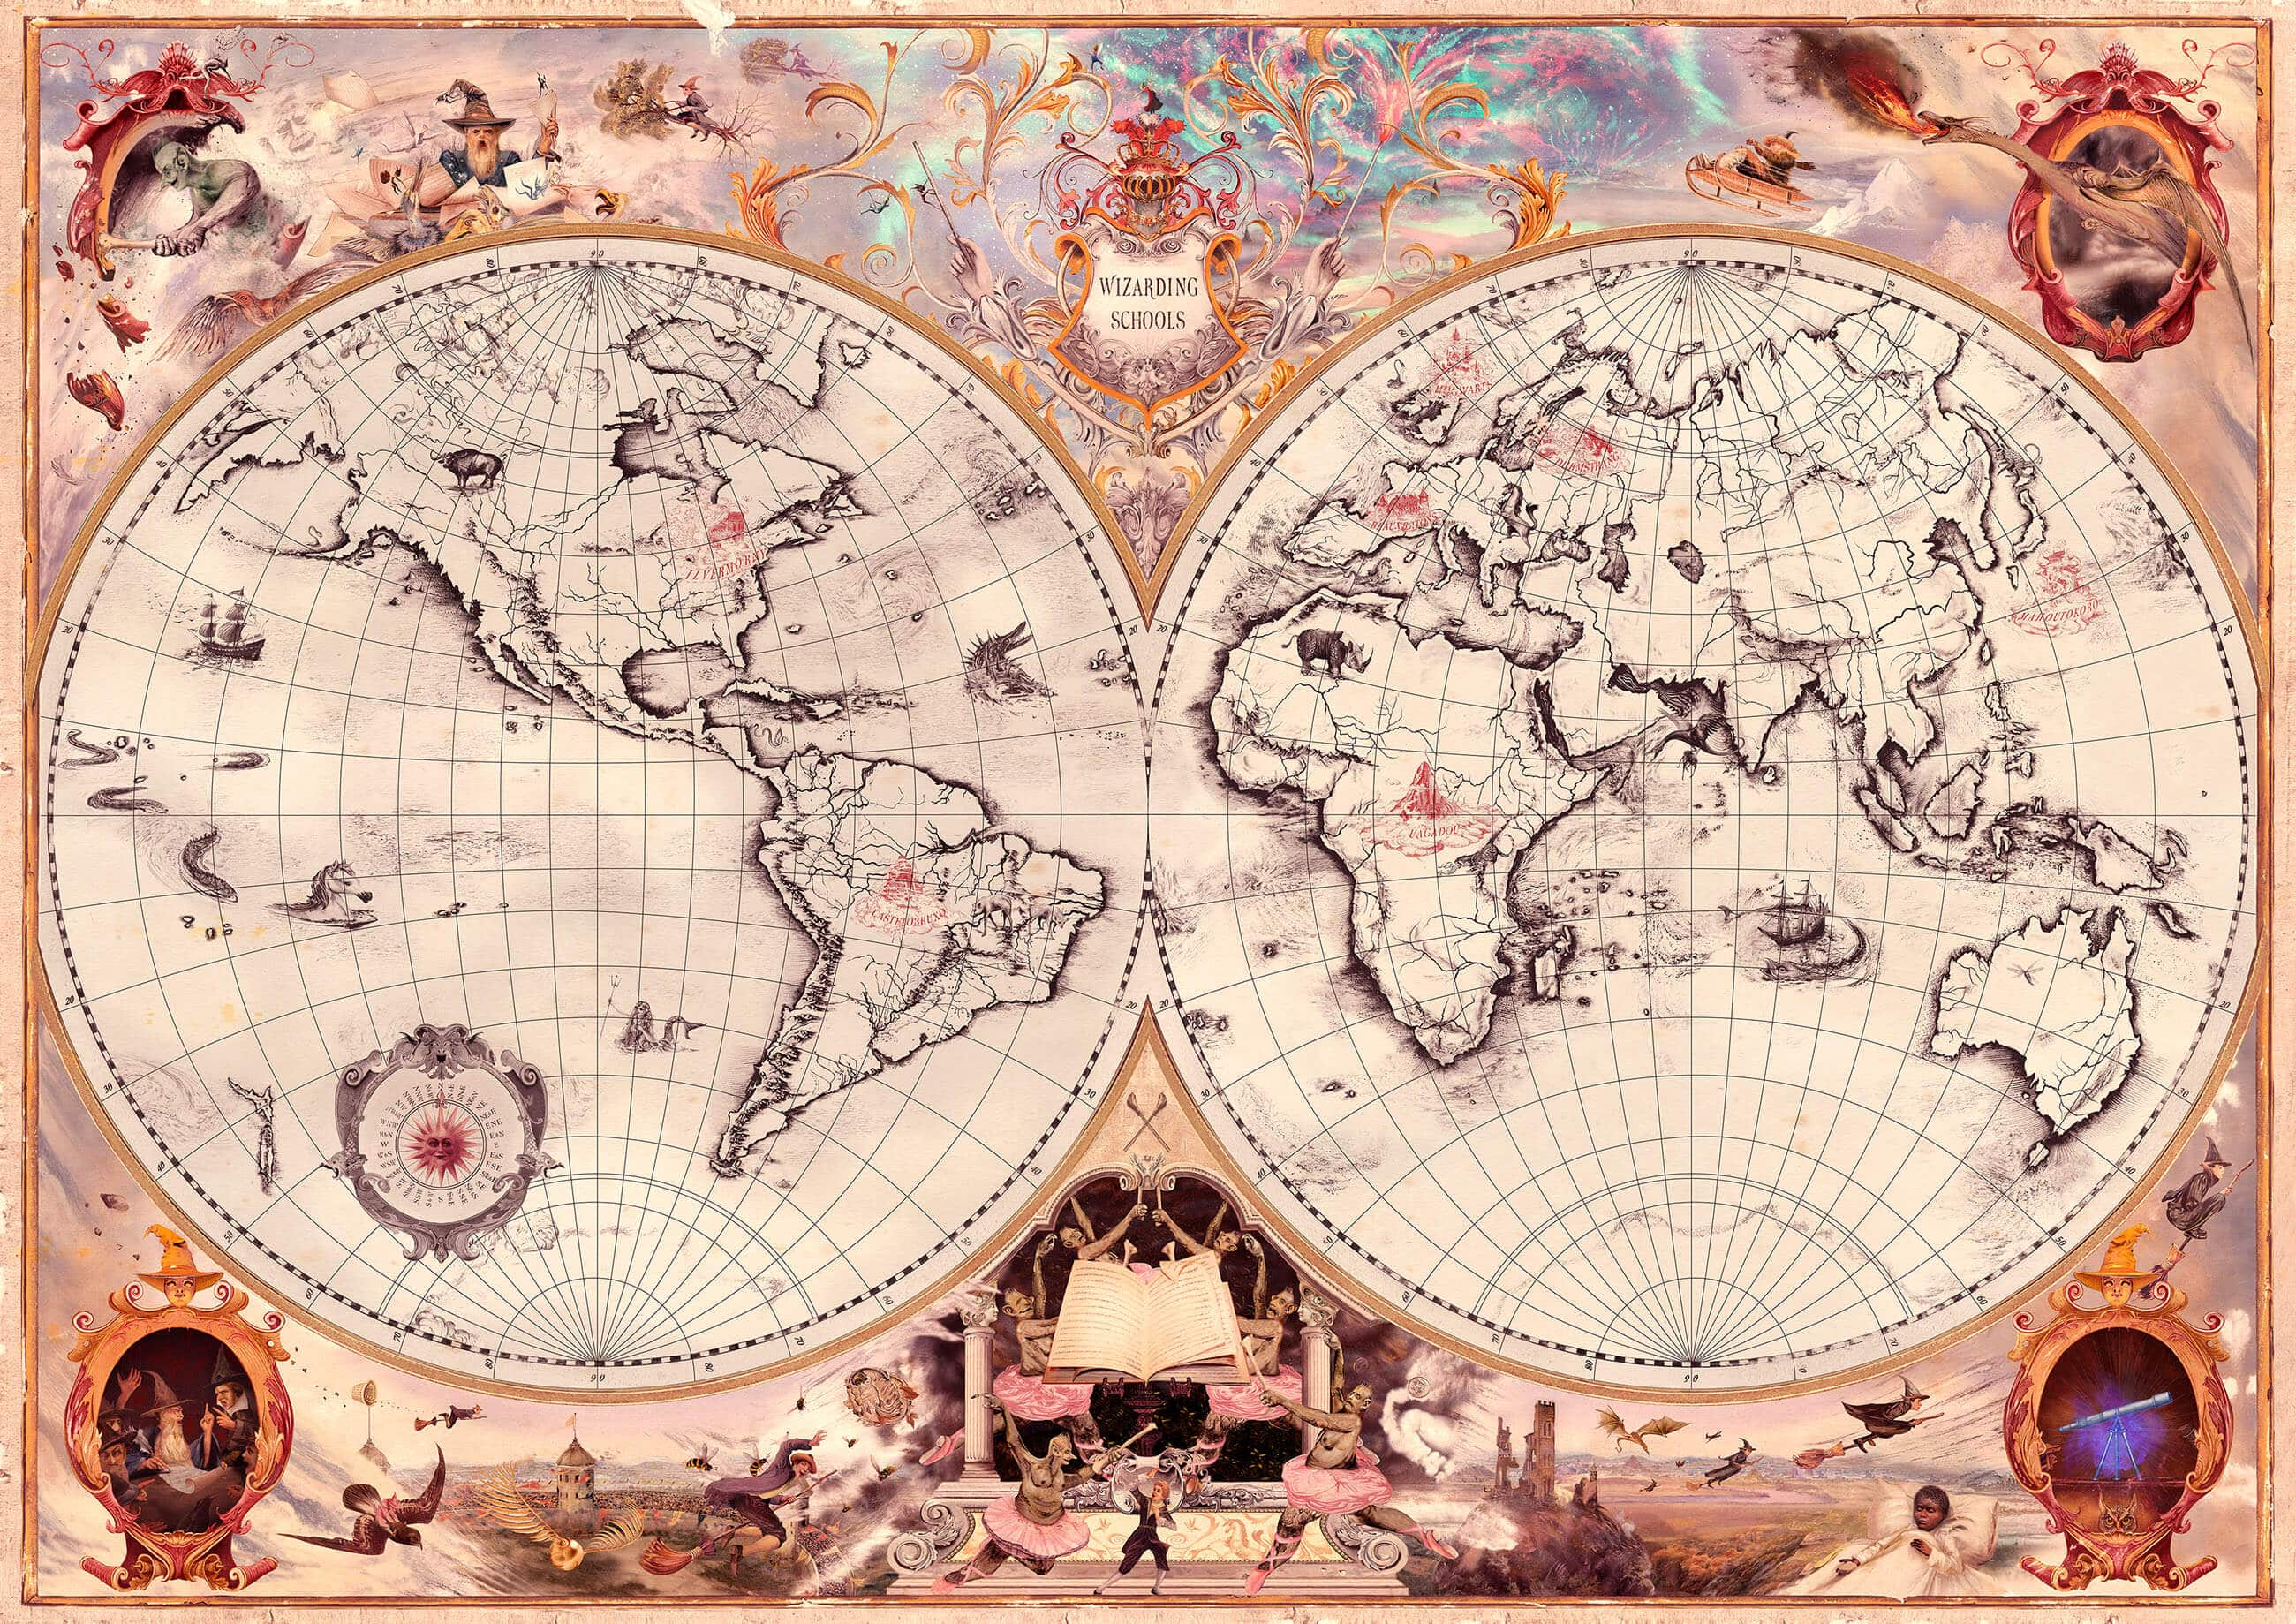 wizarding_schools_map_lr